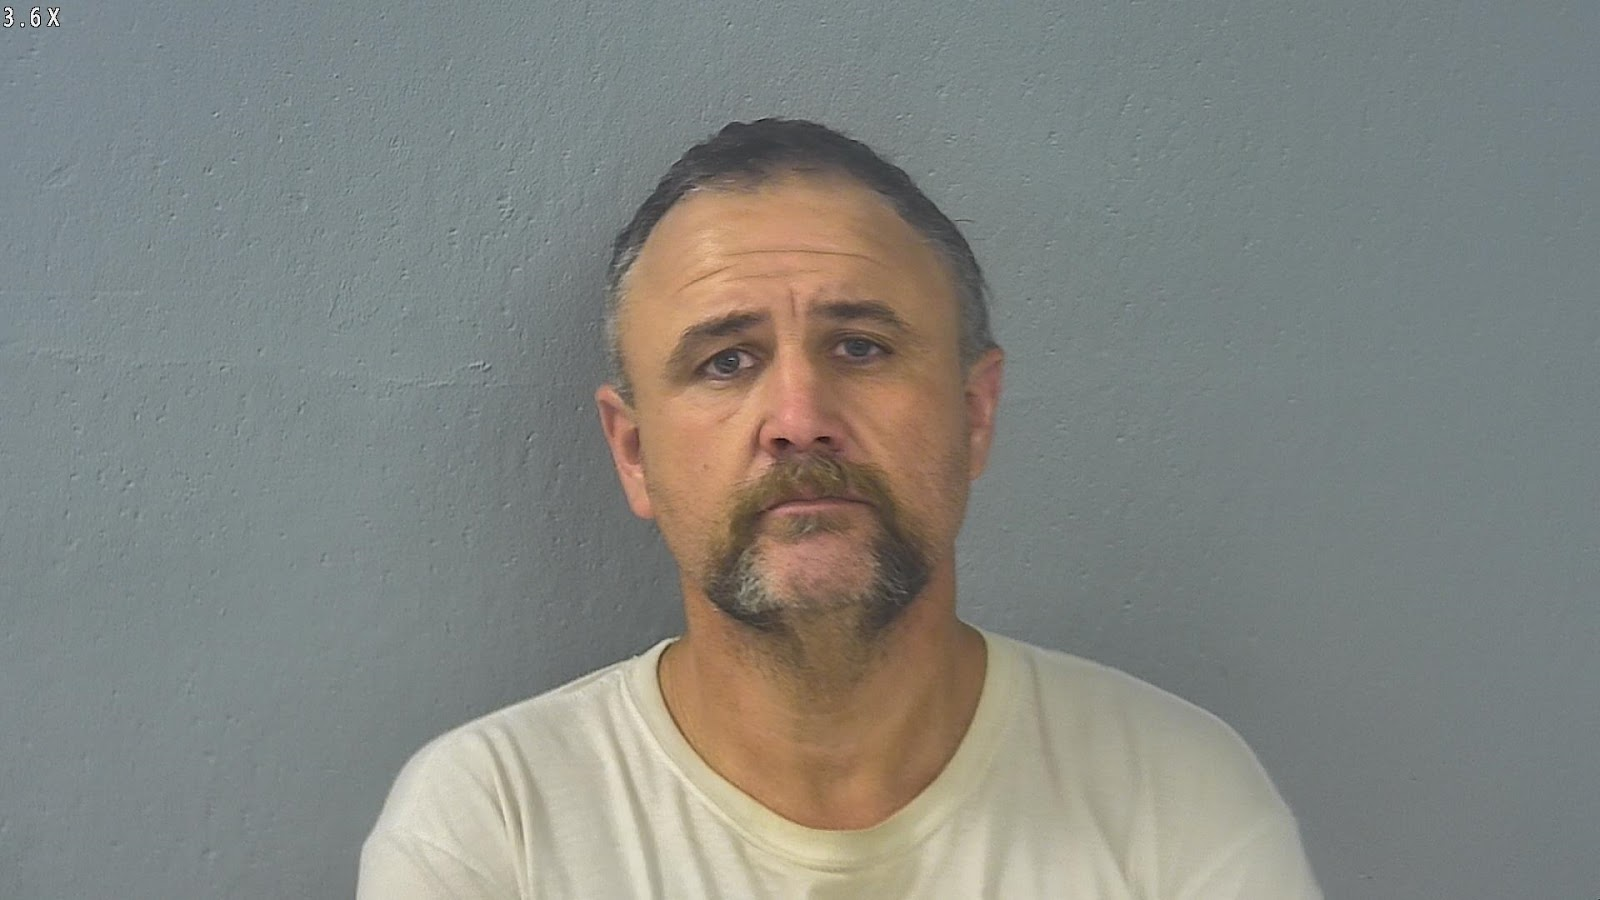 The Turner Report: Anderson man arrested on federal meth